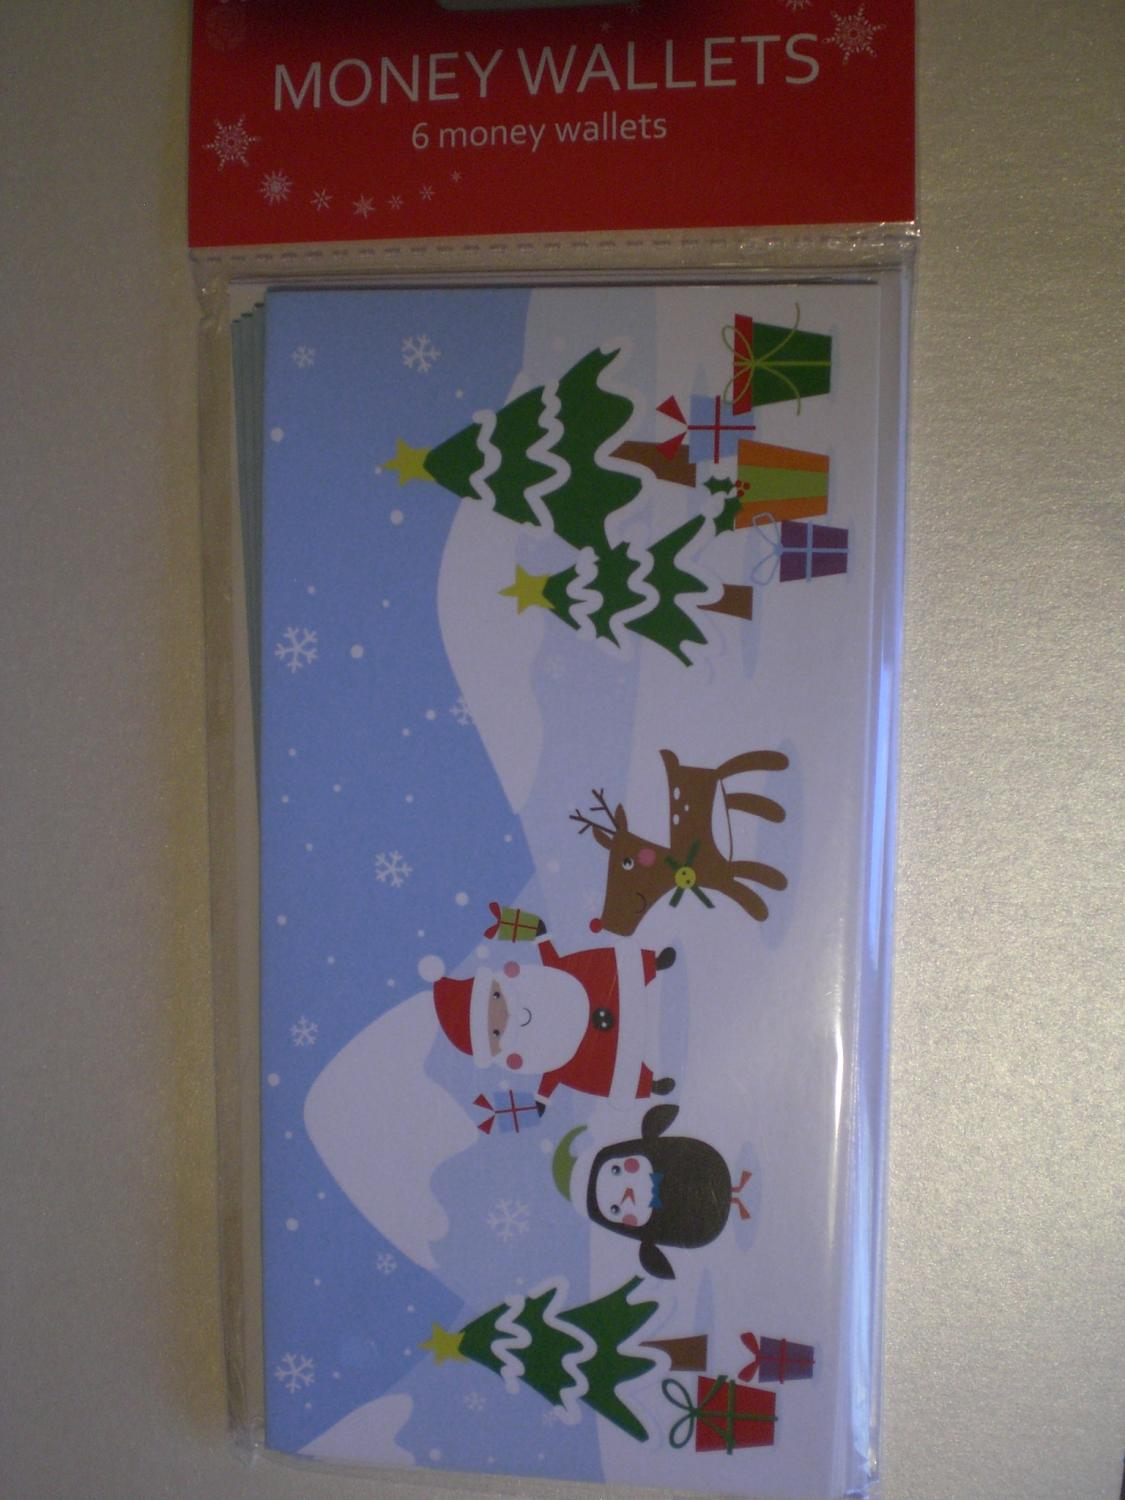 Christmas money wallets multipack